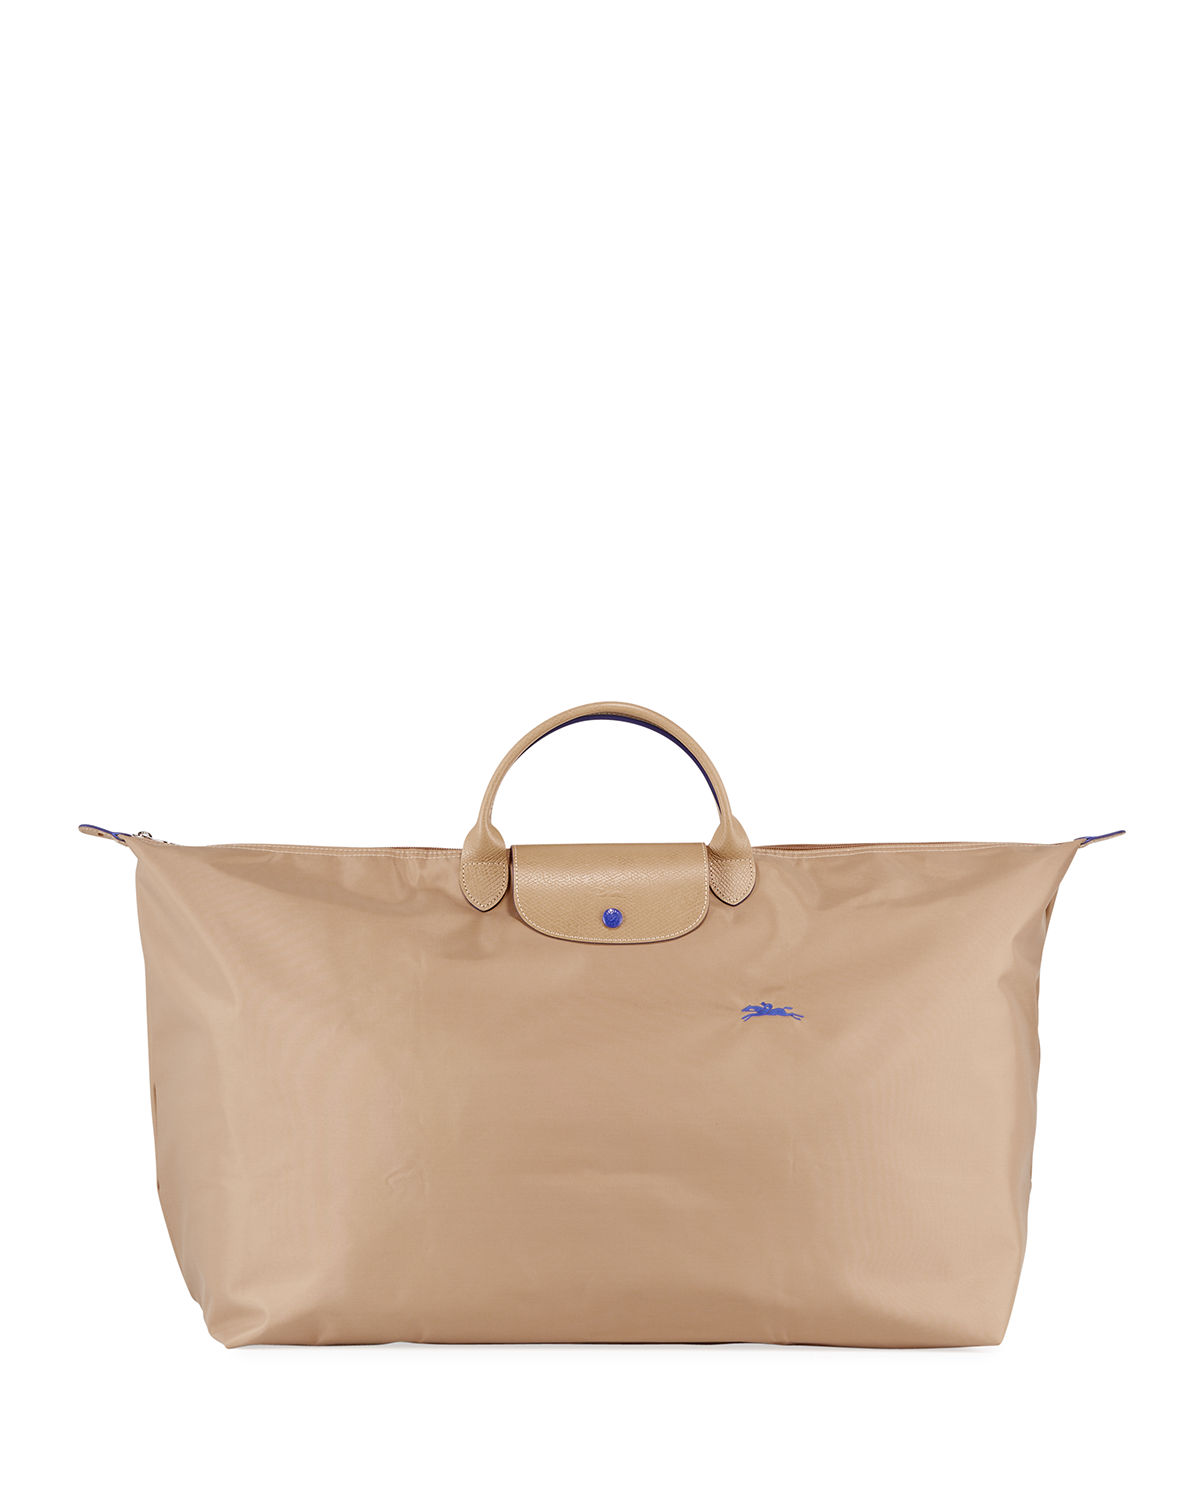 Le Pliage Club Nylon Top-Handle Tote Bag